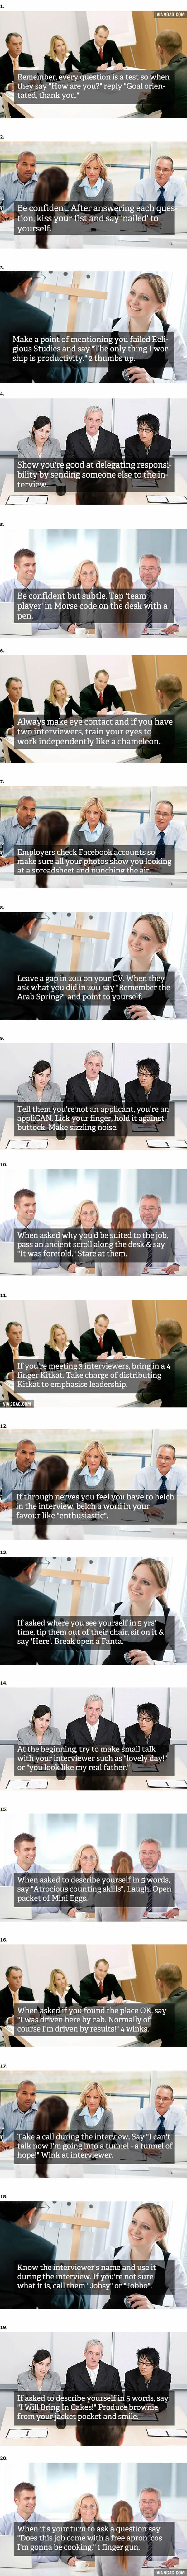 essential job interview tips funny the o jays and interview 20 essential job interview tips has the best funny pics gifs videos gaming anime manga movie tv cosplay sport food memes cute fail